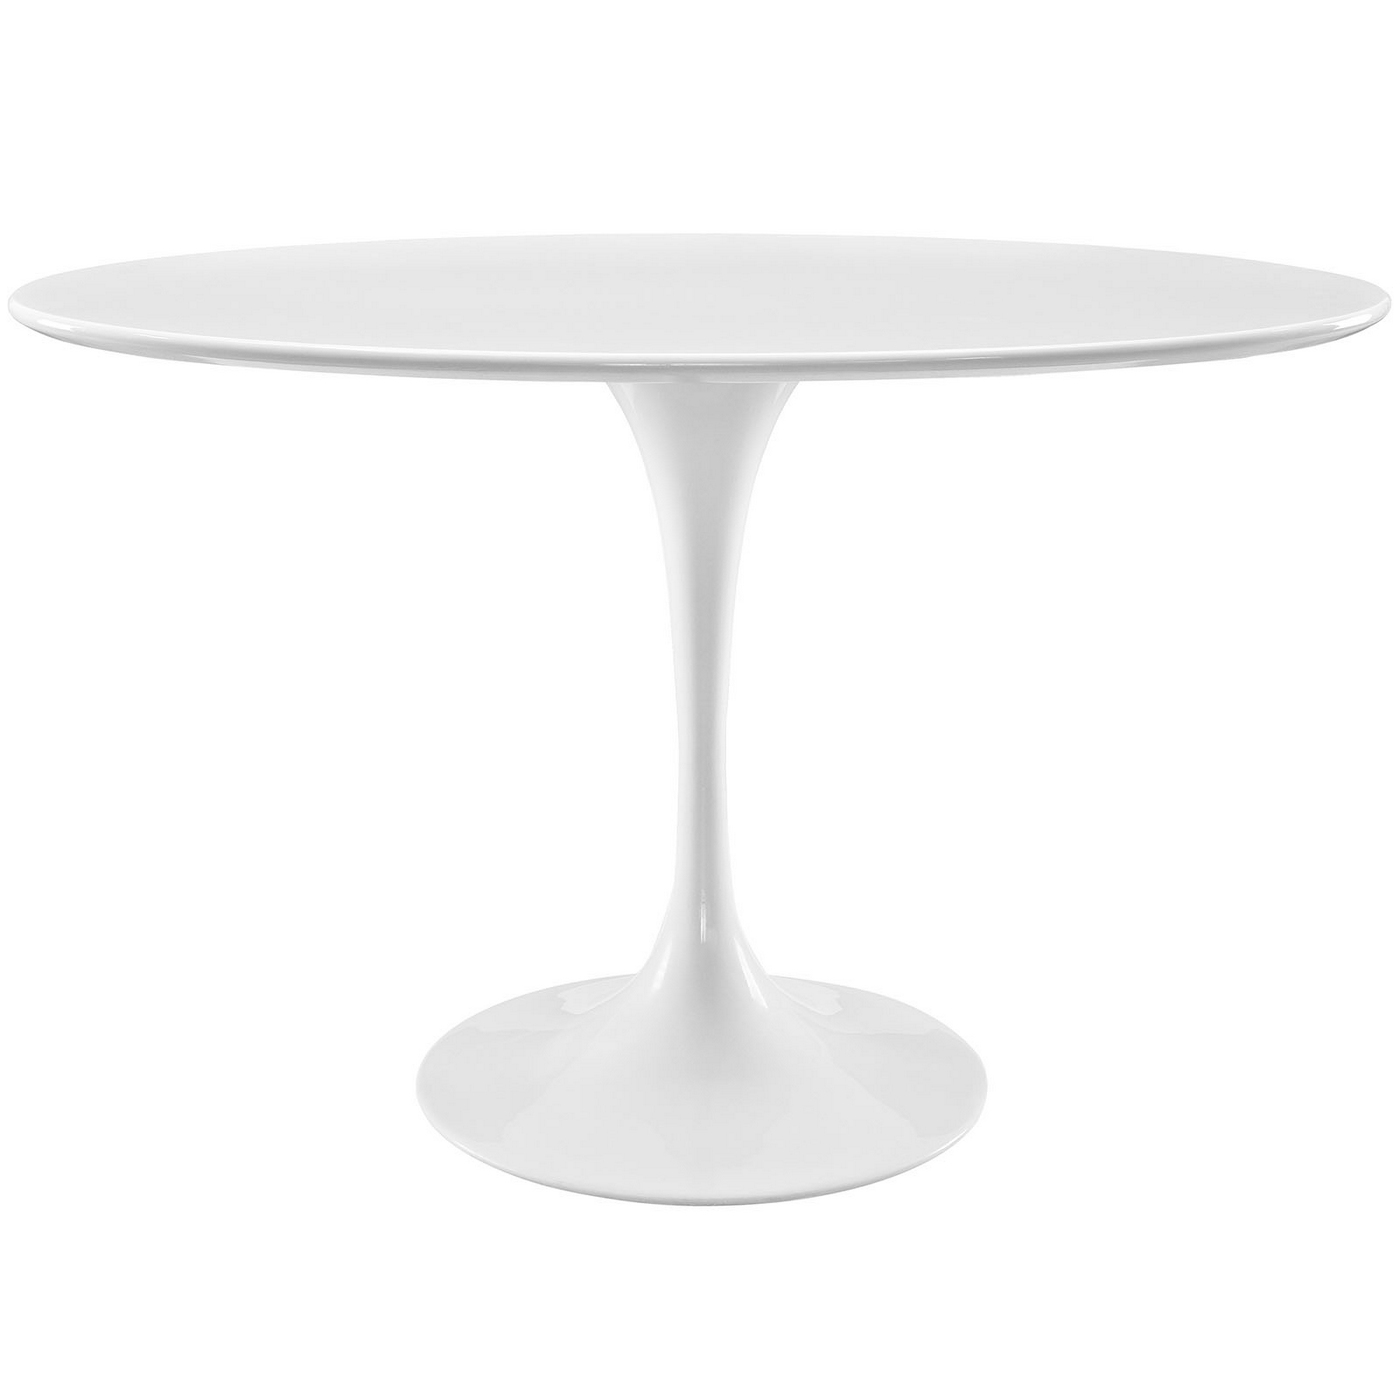 lippa 48 oval shaped wood dining table w metal lacquered base white. Black Bedroom Furniture Sets. Home Design Ideas